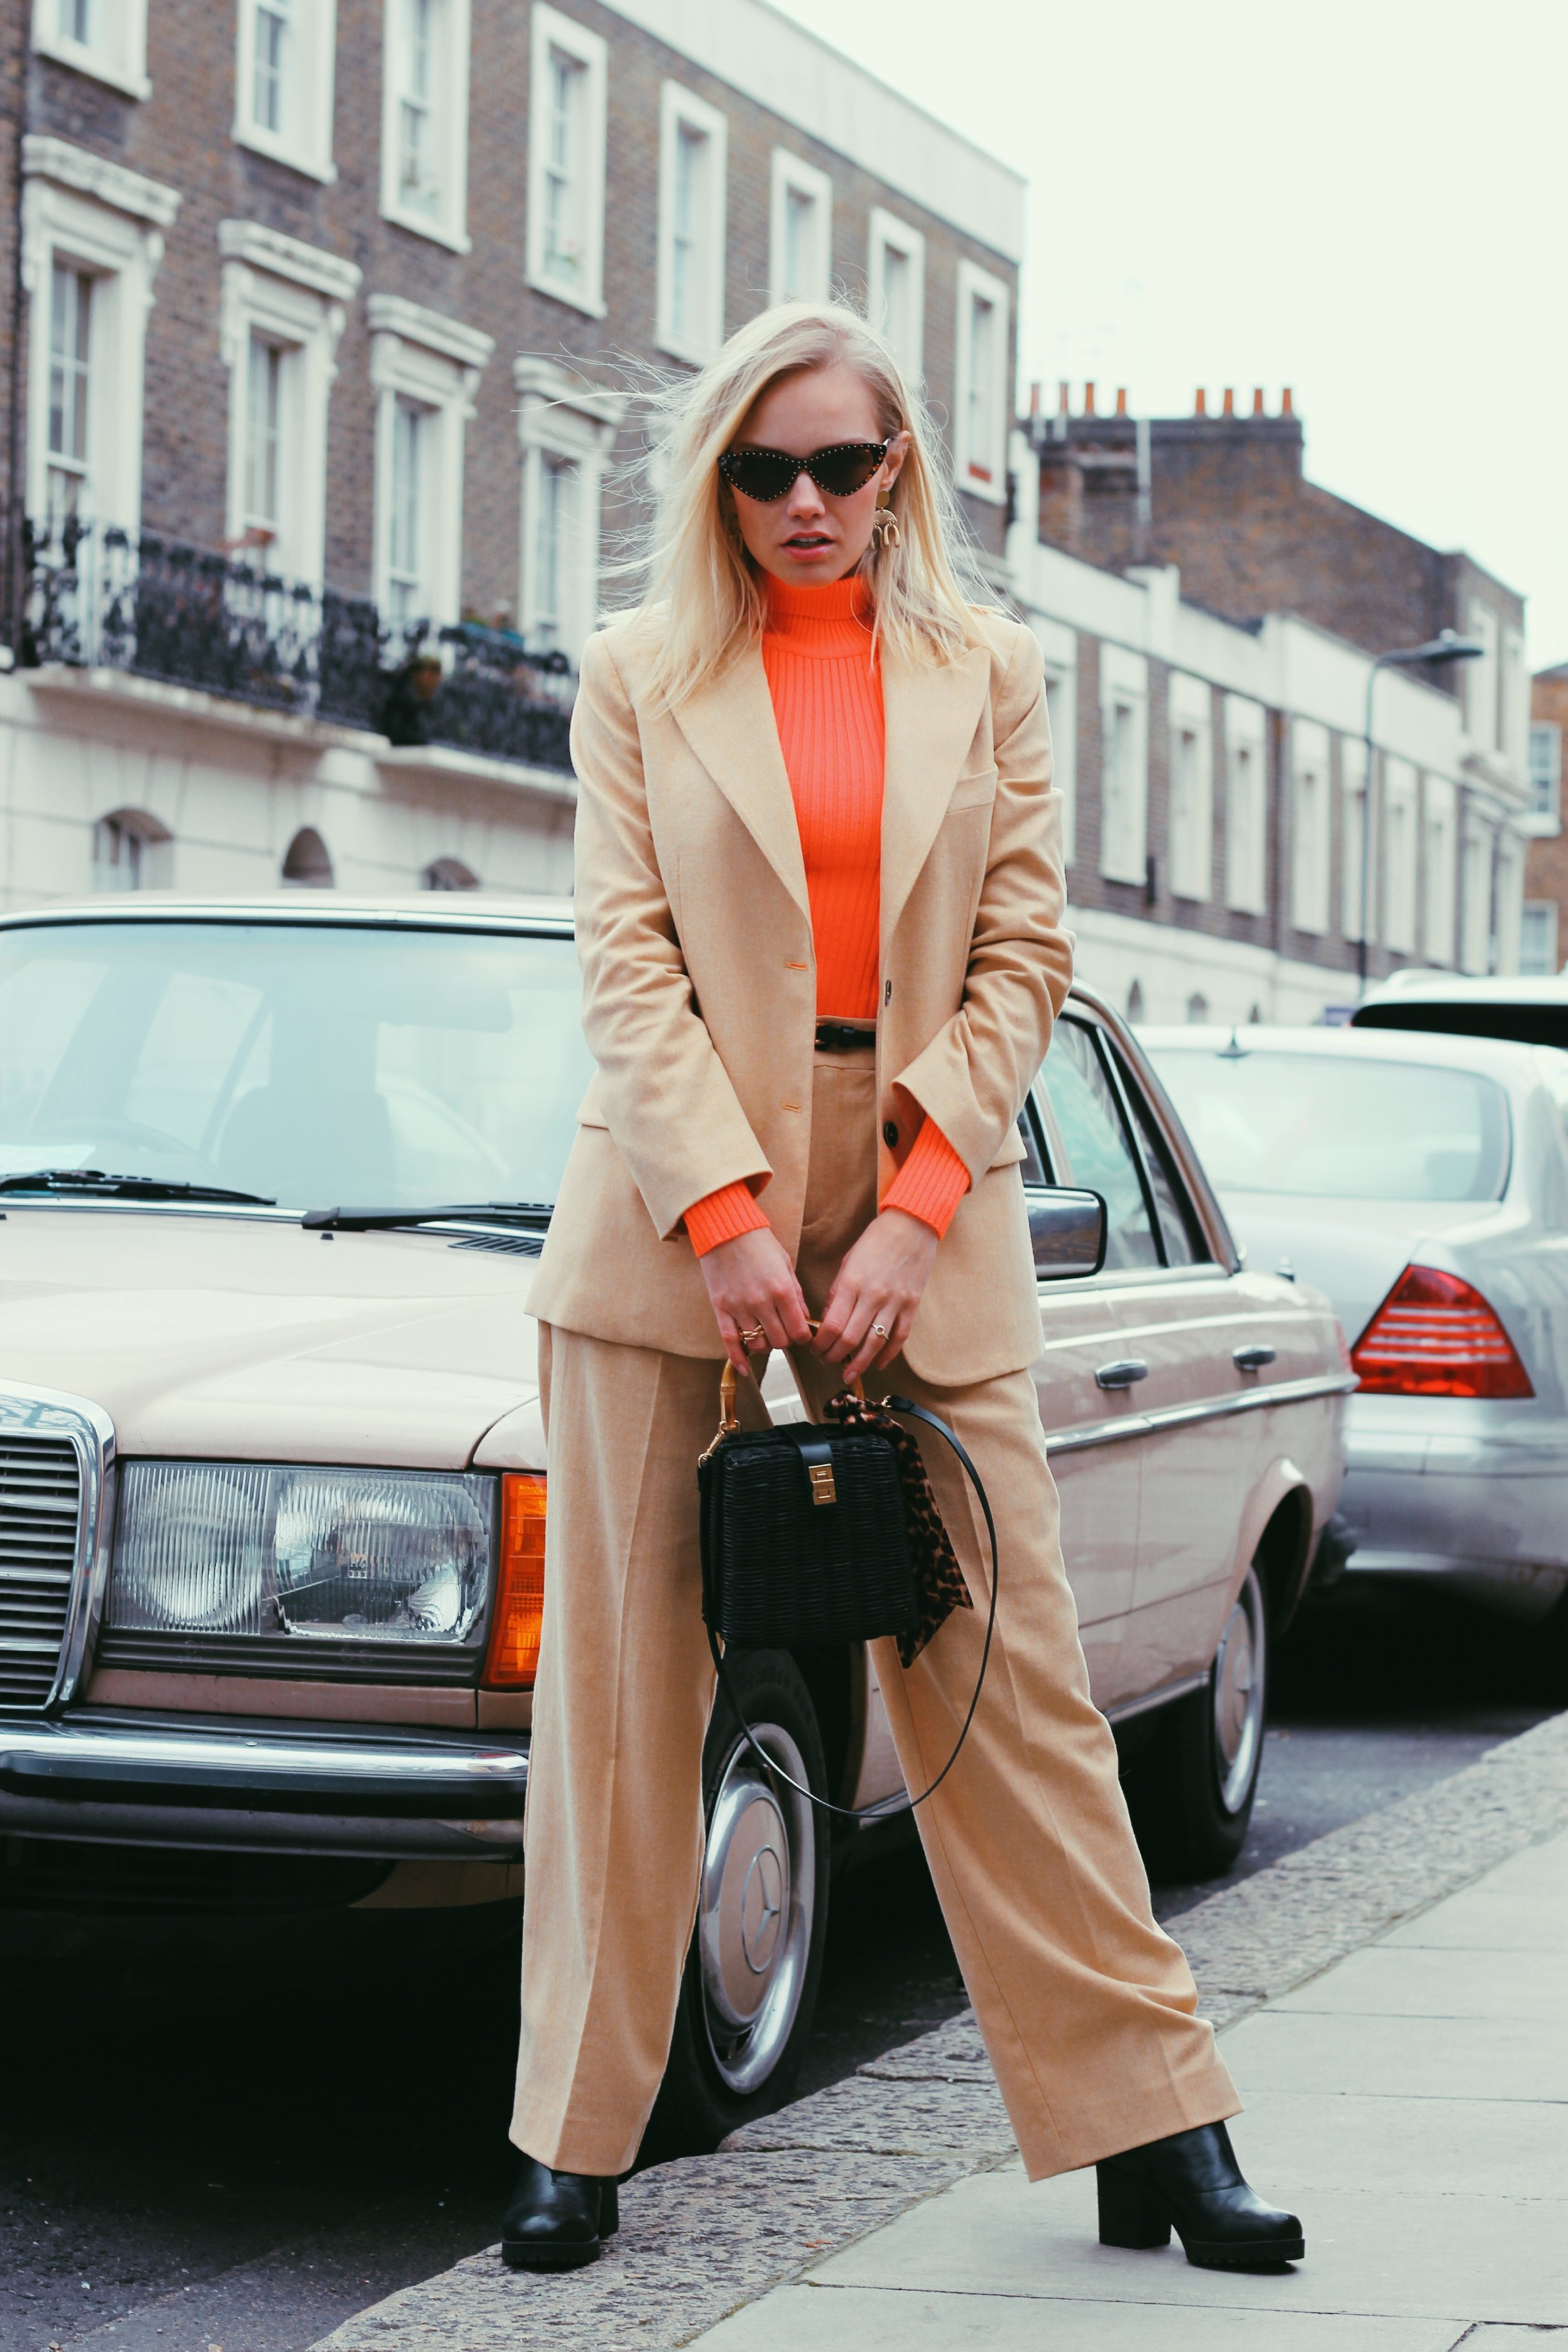 NEON - ONE OF THE BIGGEST SS19 TRENDS - We don't want to go all out rave-neon, but pairing one super bright item with a more subtle outfit (like a beige wool suit like I have gone for here) is totally doable!Neon colours make me think of summer and it looks like we will be seeing way more off it in the upcoming Spring/Summer collections.Soon (but not quite yet) we can say bye-bye to big chunky coats and scarfs, and in the meantime, we need to find a good compromise between welcoming the spring trends but also keep warm during these cold winter months. As this suit from Mango is made out of wool, it kept me nice and warm and combined with a bright neon high neck jumper, it became the perfect 'looking forward to spring, but it's still very much winter' kind of outfit :PSOMETHING OLD, SOMETHING NEWI love it when you can mix in some of your older pieces into your outfit. For this look, all the accessories I used are items I have had for quite some time and are probably not in the store anymore. However, most of the items are brand new and you can find them in the shop slightly further down in this post.